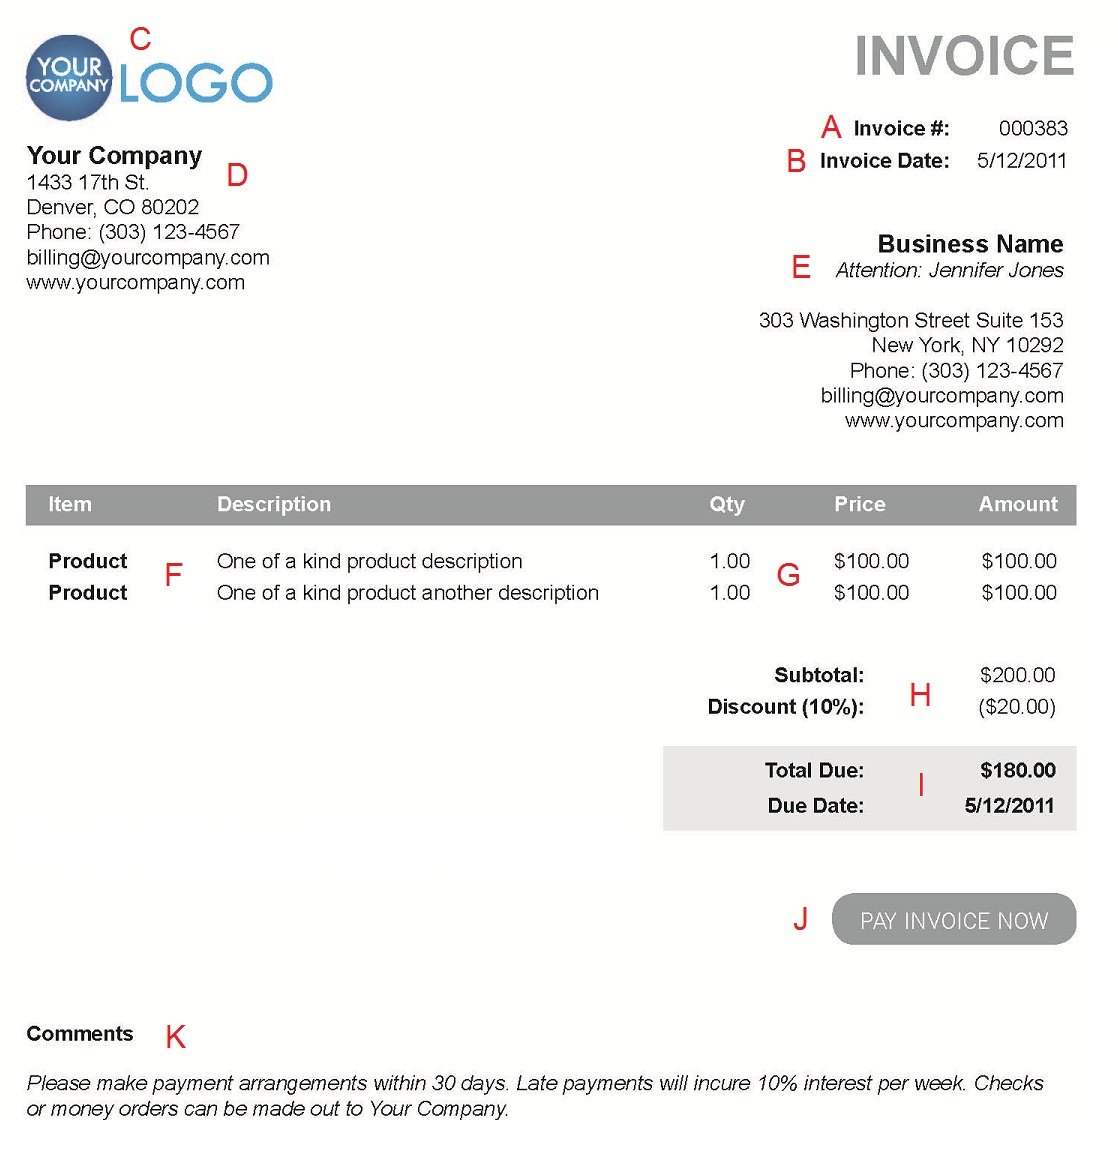 Centralasianshepherdus  Winsome The  Different Sections Of An Electronic Payment Invoice With Lovely A  With Awesome Vat Invoices Also Invoice And Purchase Order In Addition Free Sales Invoice Template And Best Software For Invoices As Well As Invoice Slip Additionally Vat Invoicing From Paysimplecom With Centralasianshepherdus  Lovely The  Different Sections Of An Electronic Payment Invoice With Awesome A  And Winsome Vat Invoices Also Invoice And Purchase Order In Addition Free Sales Invoice Template From Paysimplecom